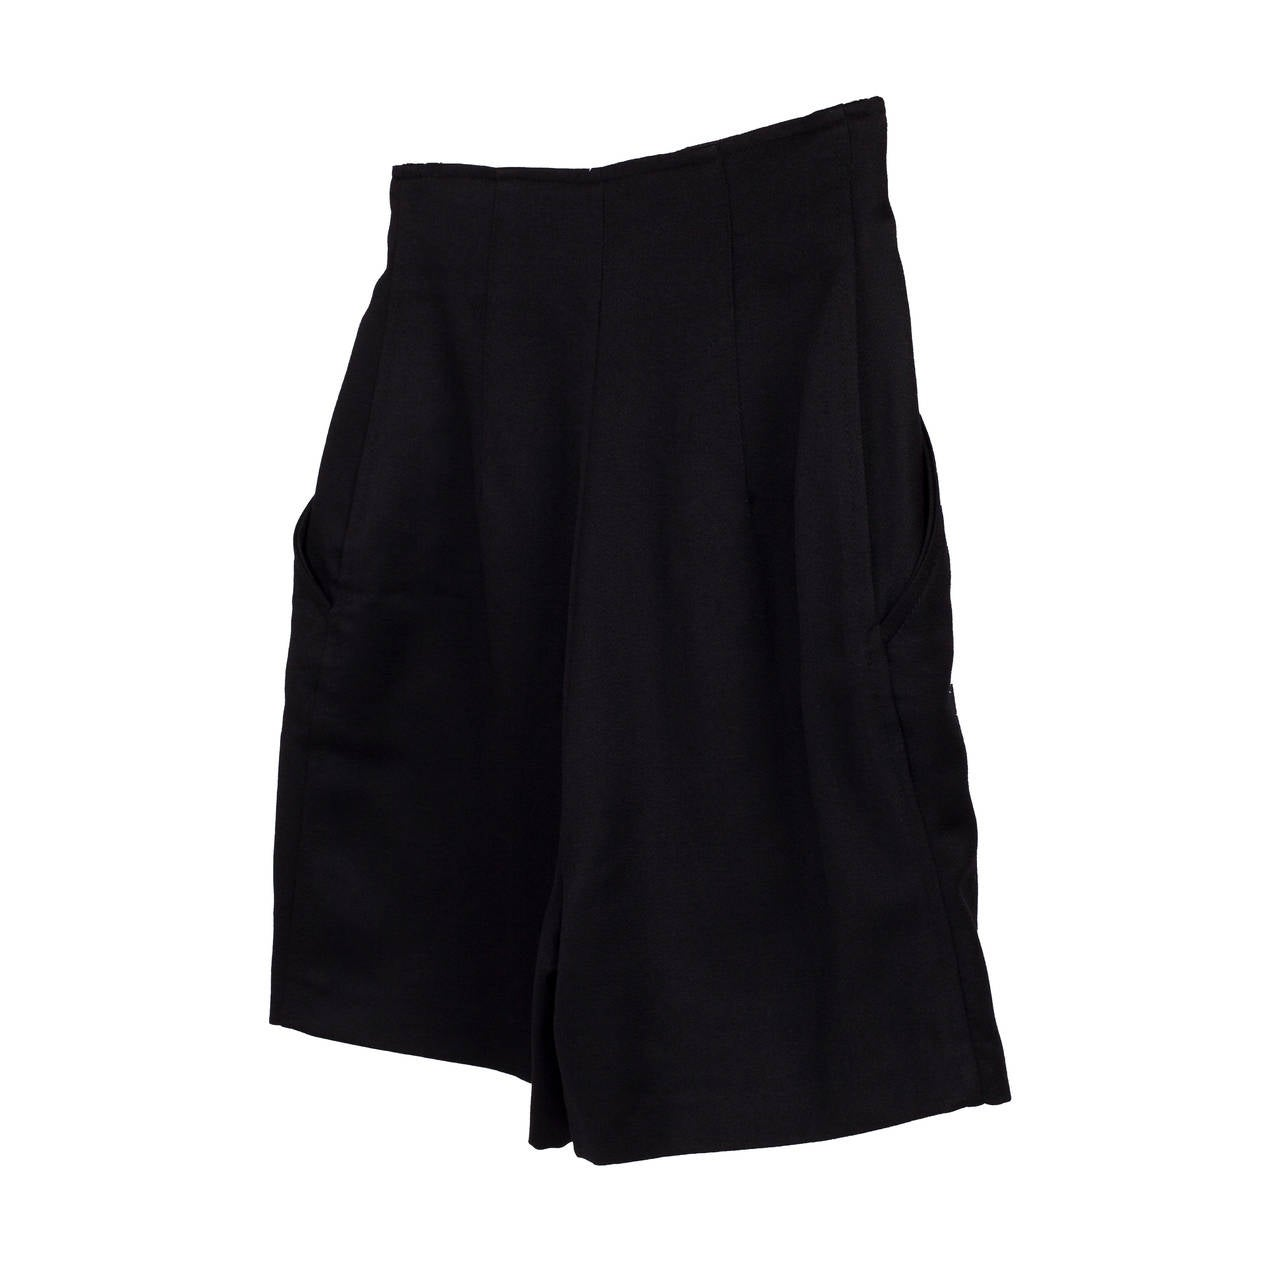 Versus Gianni Versace Black Marine High Waisted Shorts In Excellent Condition For Sale In Berlin, DE